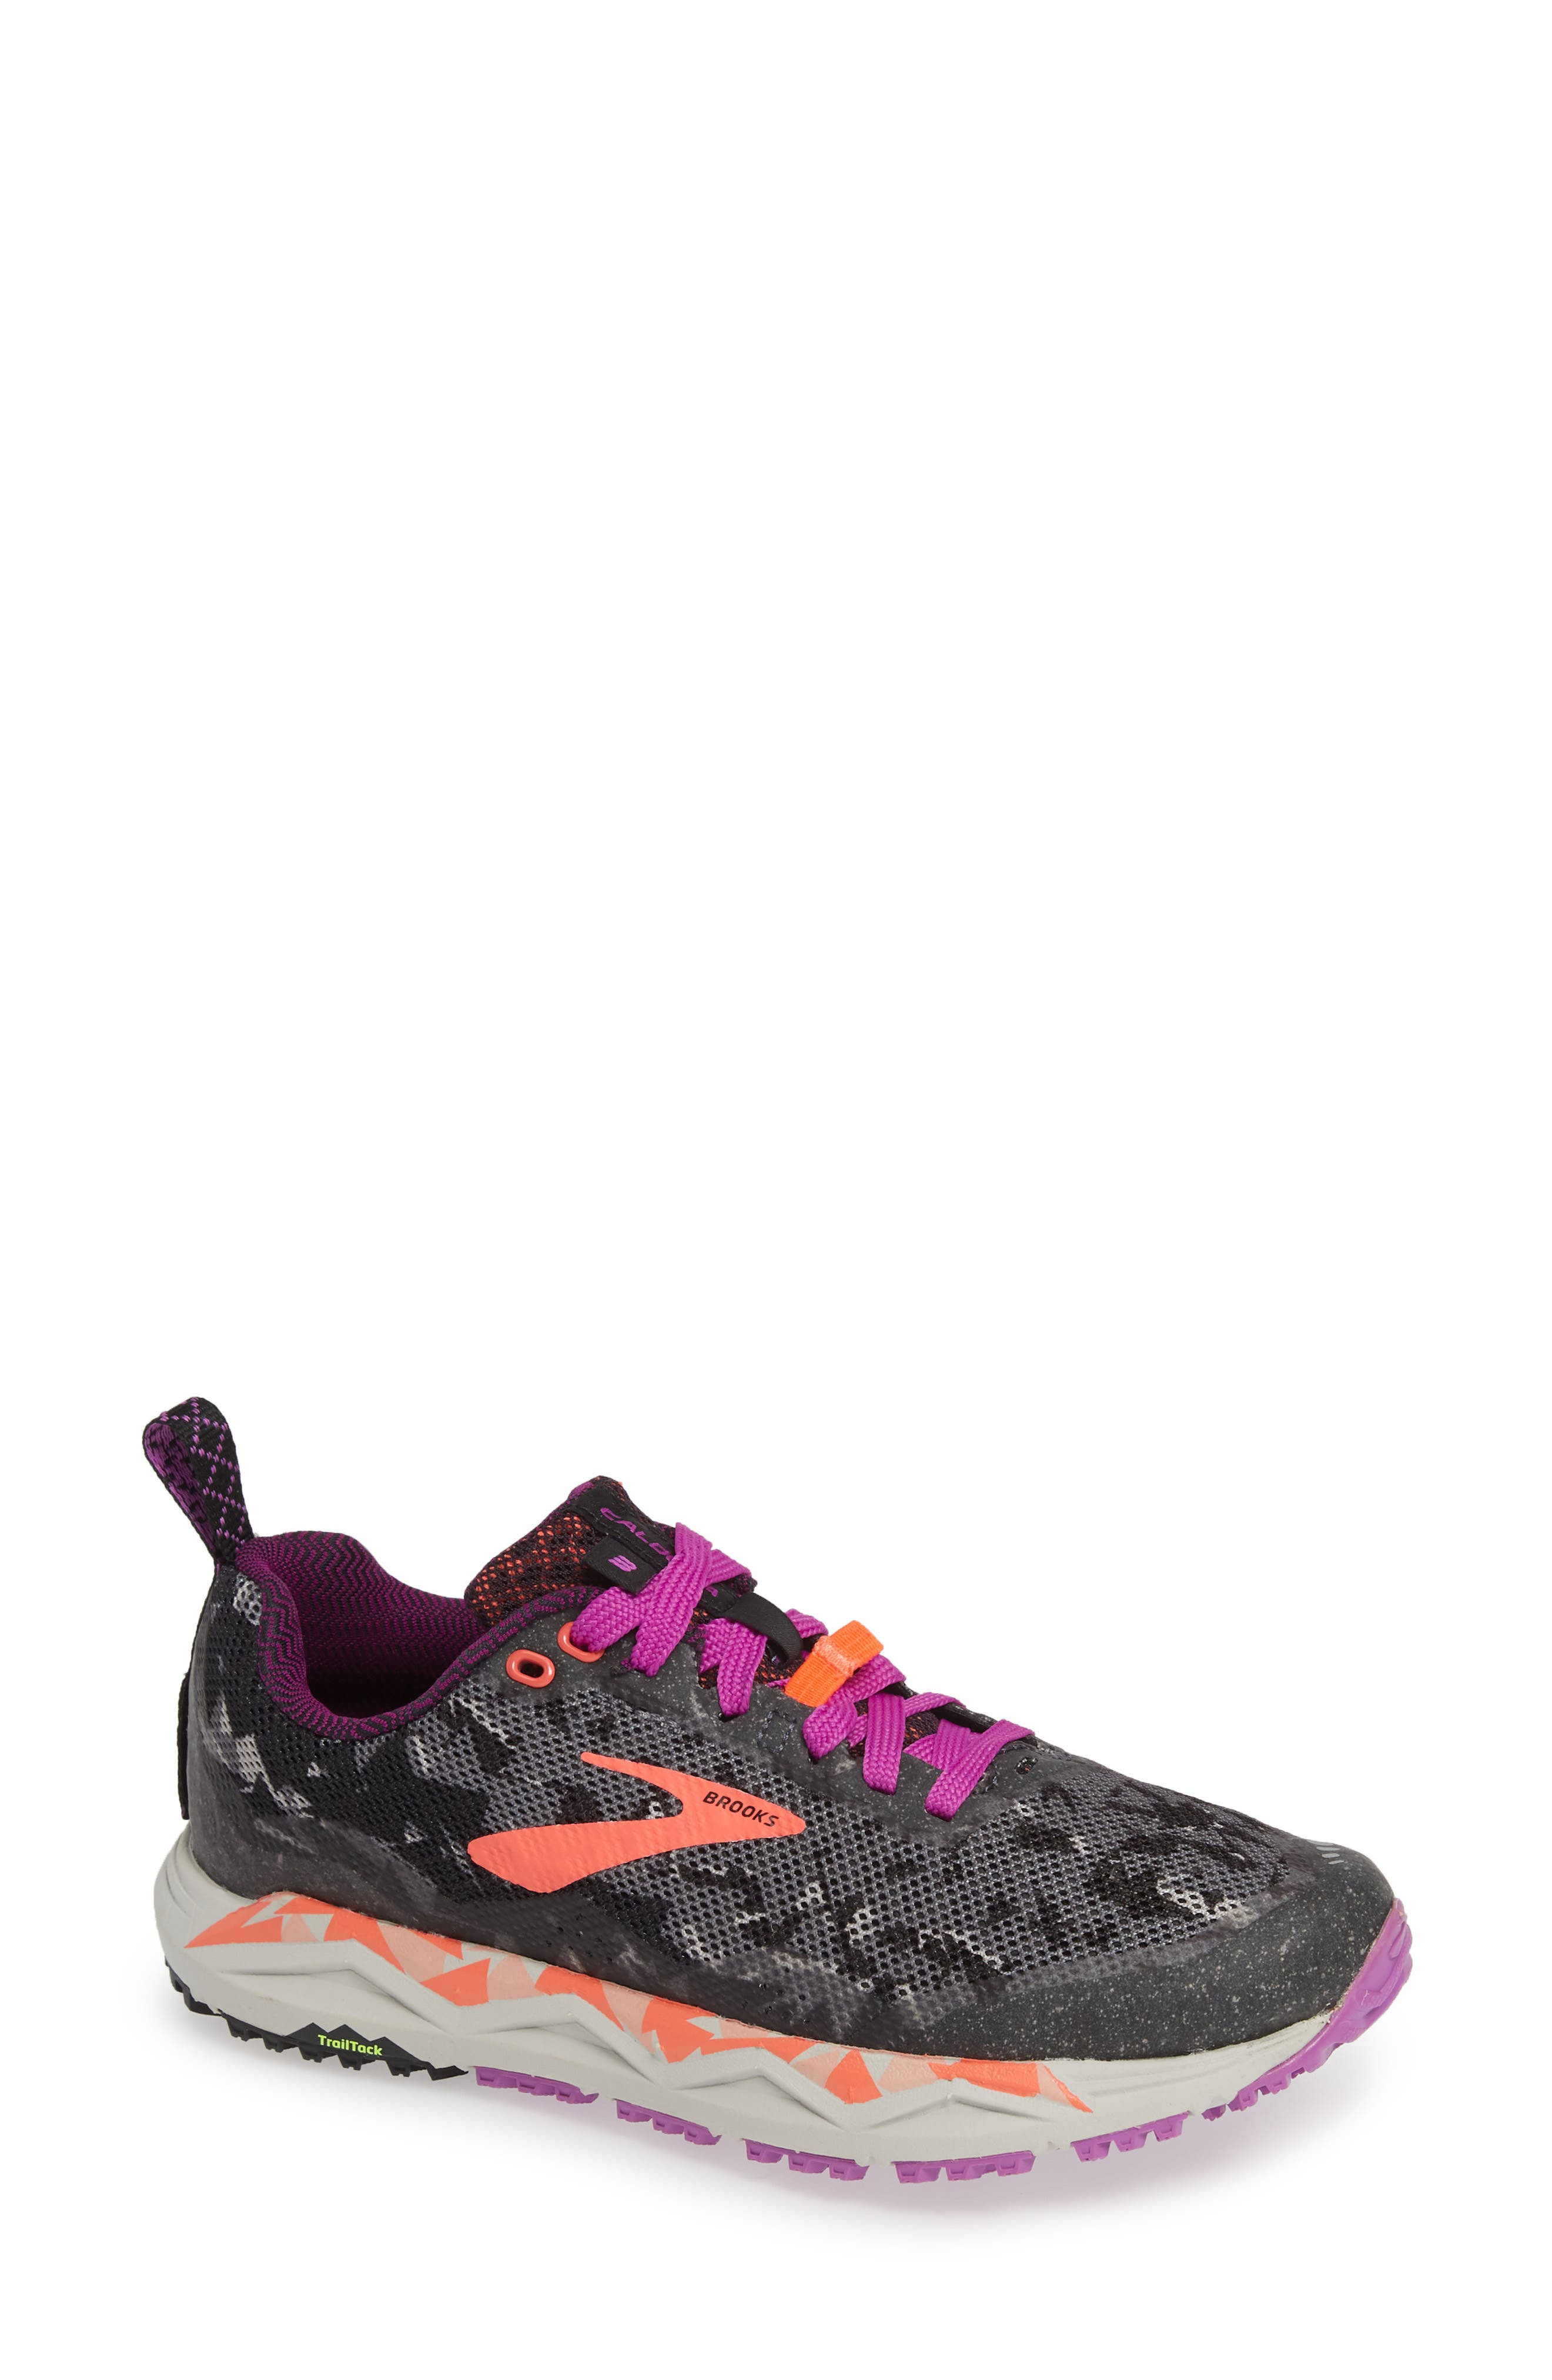 7af765810a770 trail running shoes